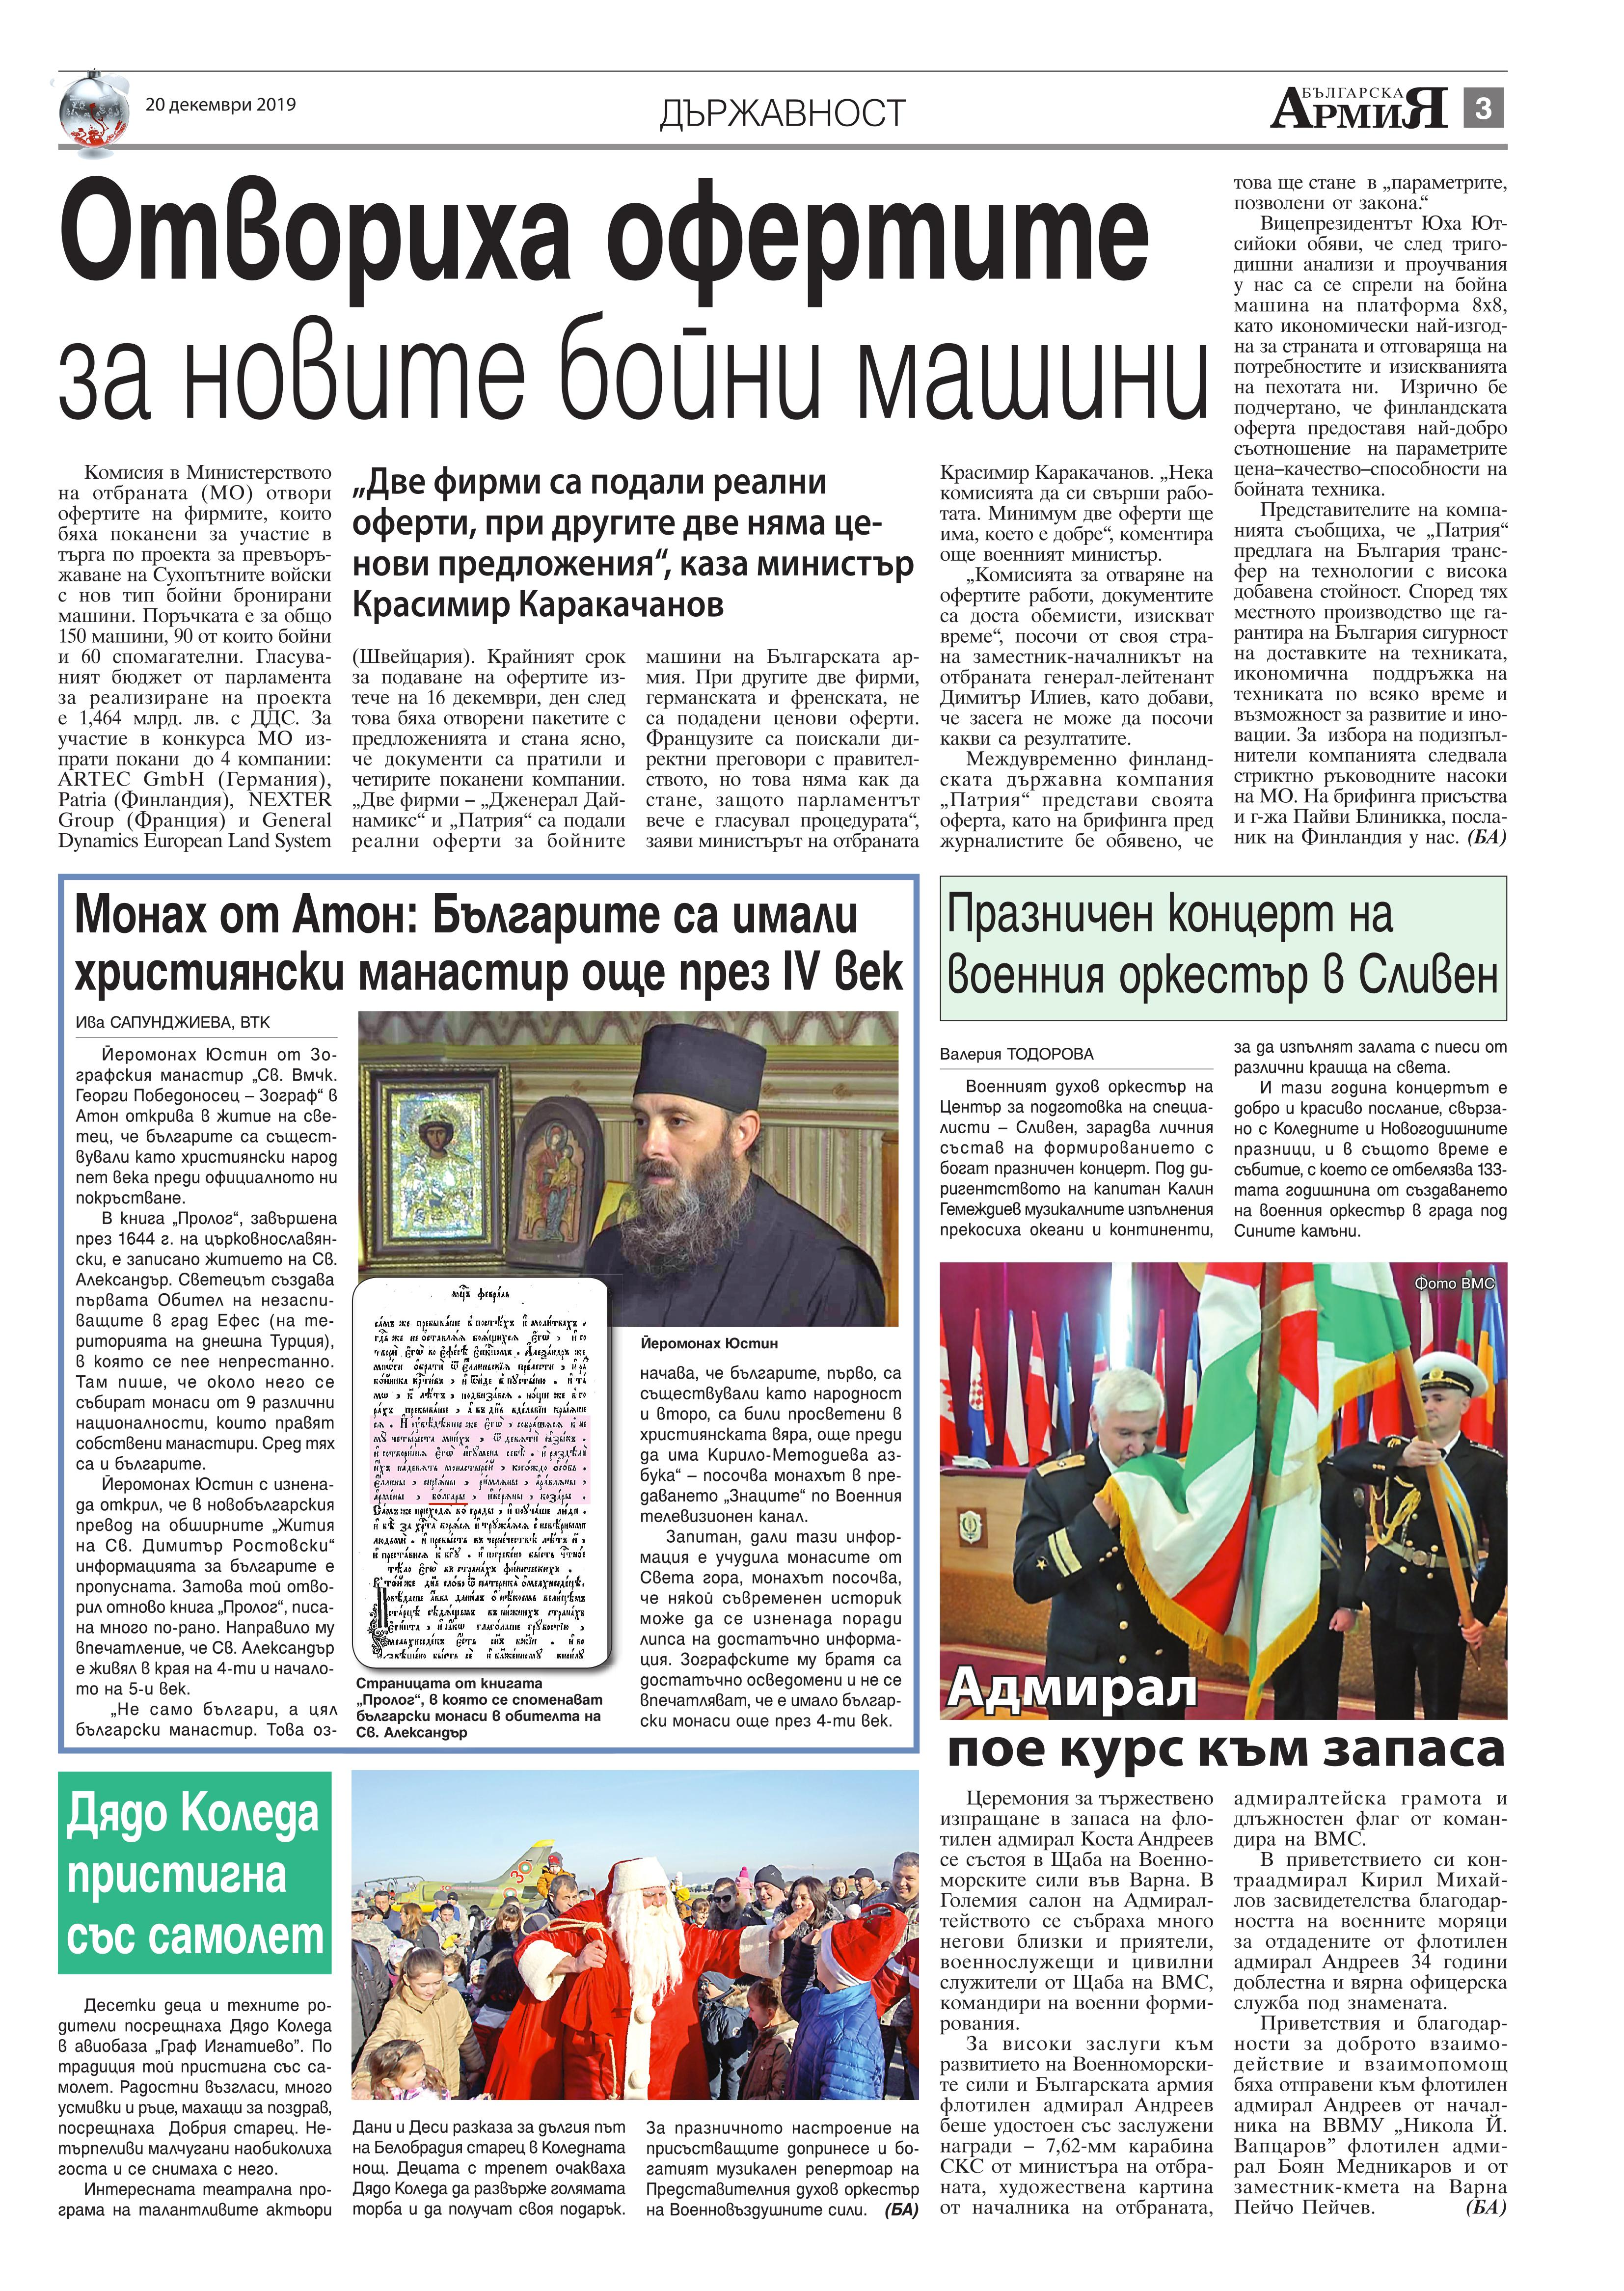 https://armymedia.bg/wp-content/uploads/2015/06/03.page1_-117.jpg